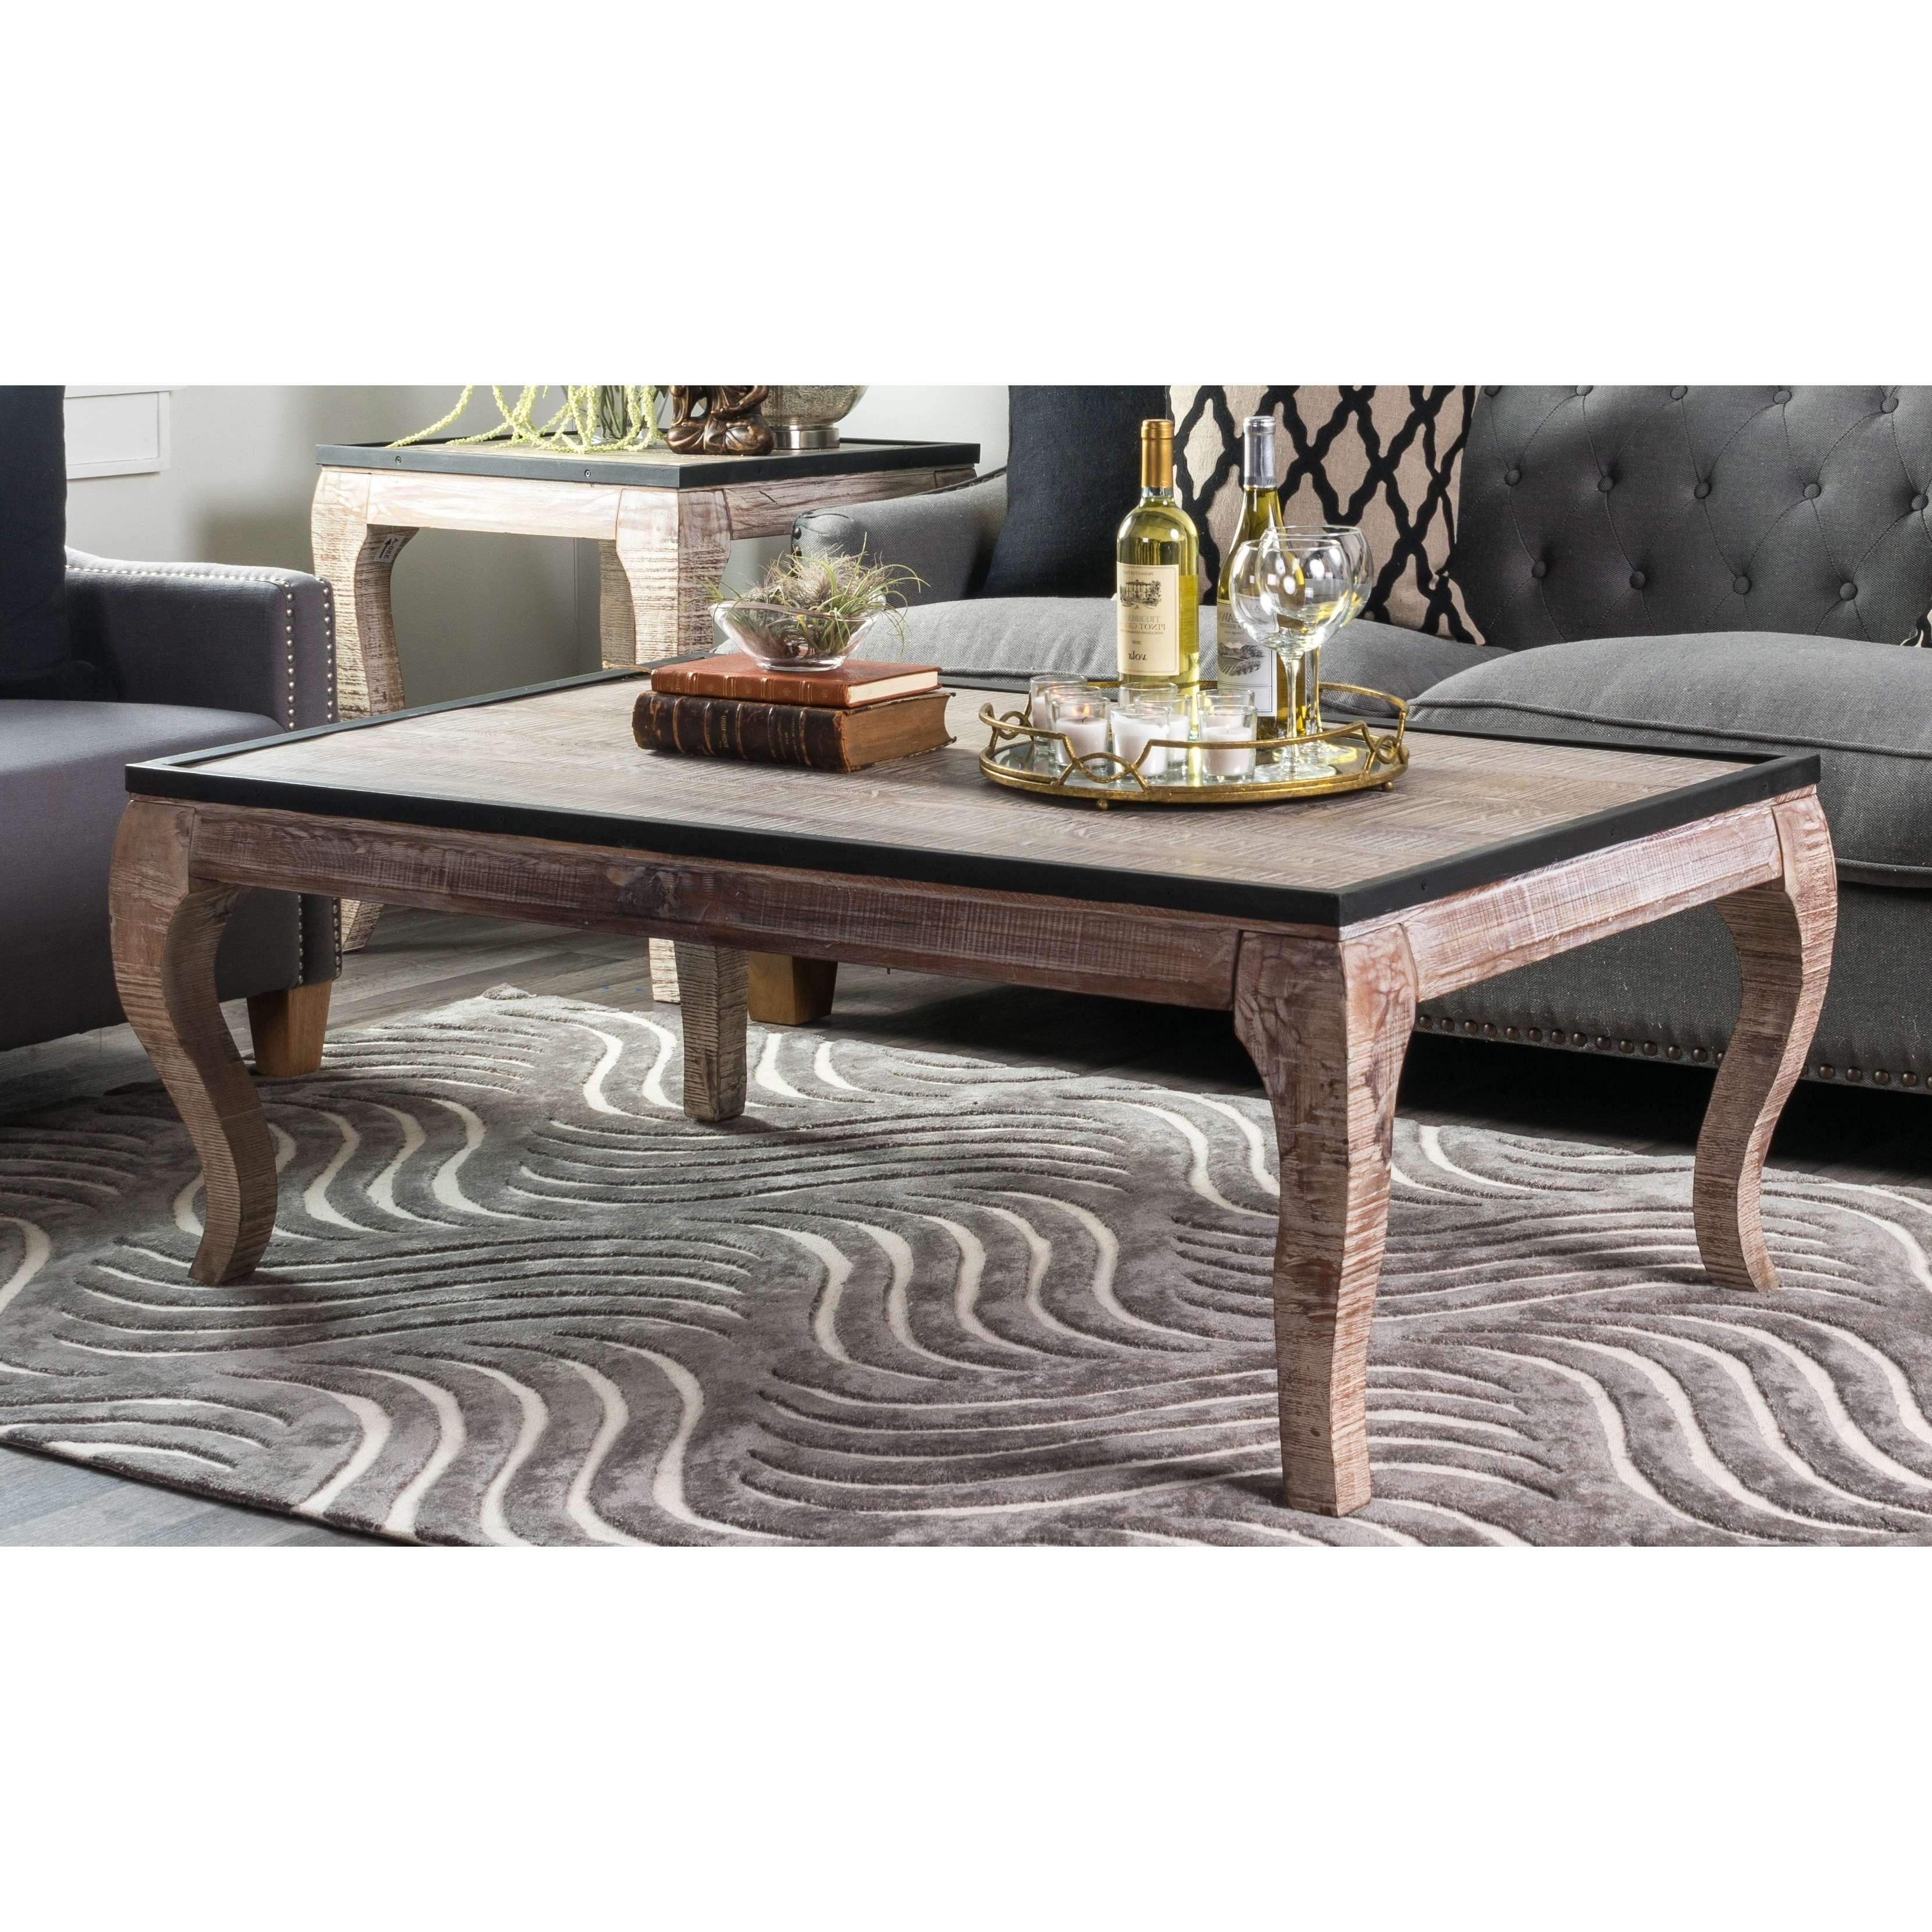 Kosas Home Cosmo Wood With Iron Trim Coffee Table – Free Shipping Regarding Most Current Cosmo Coffee Tables (View 15 of 20)